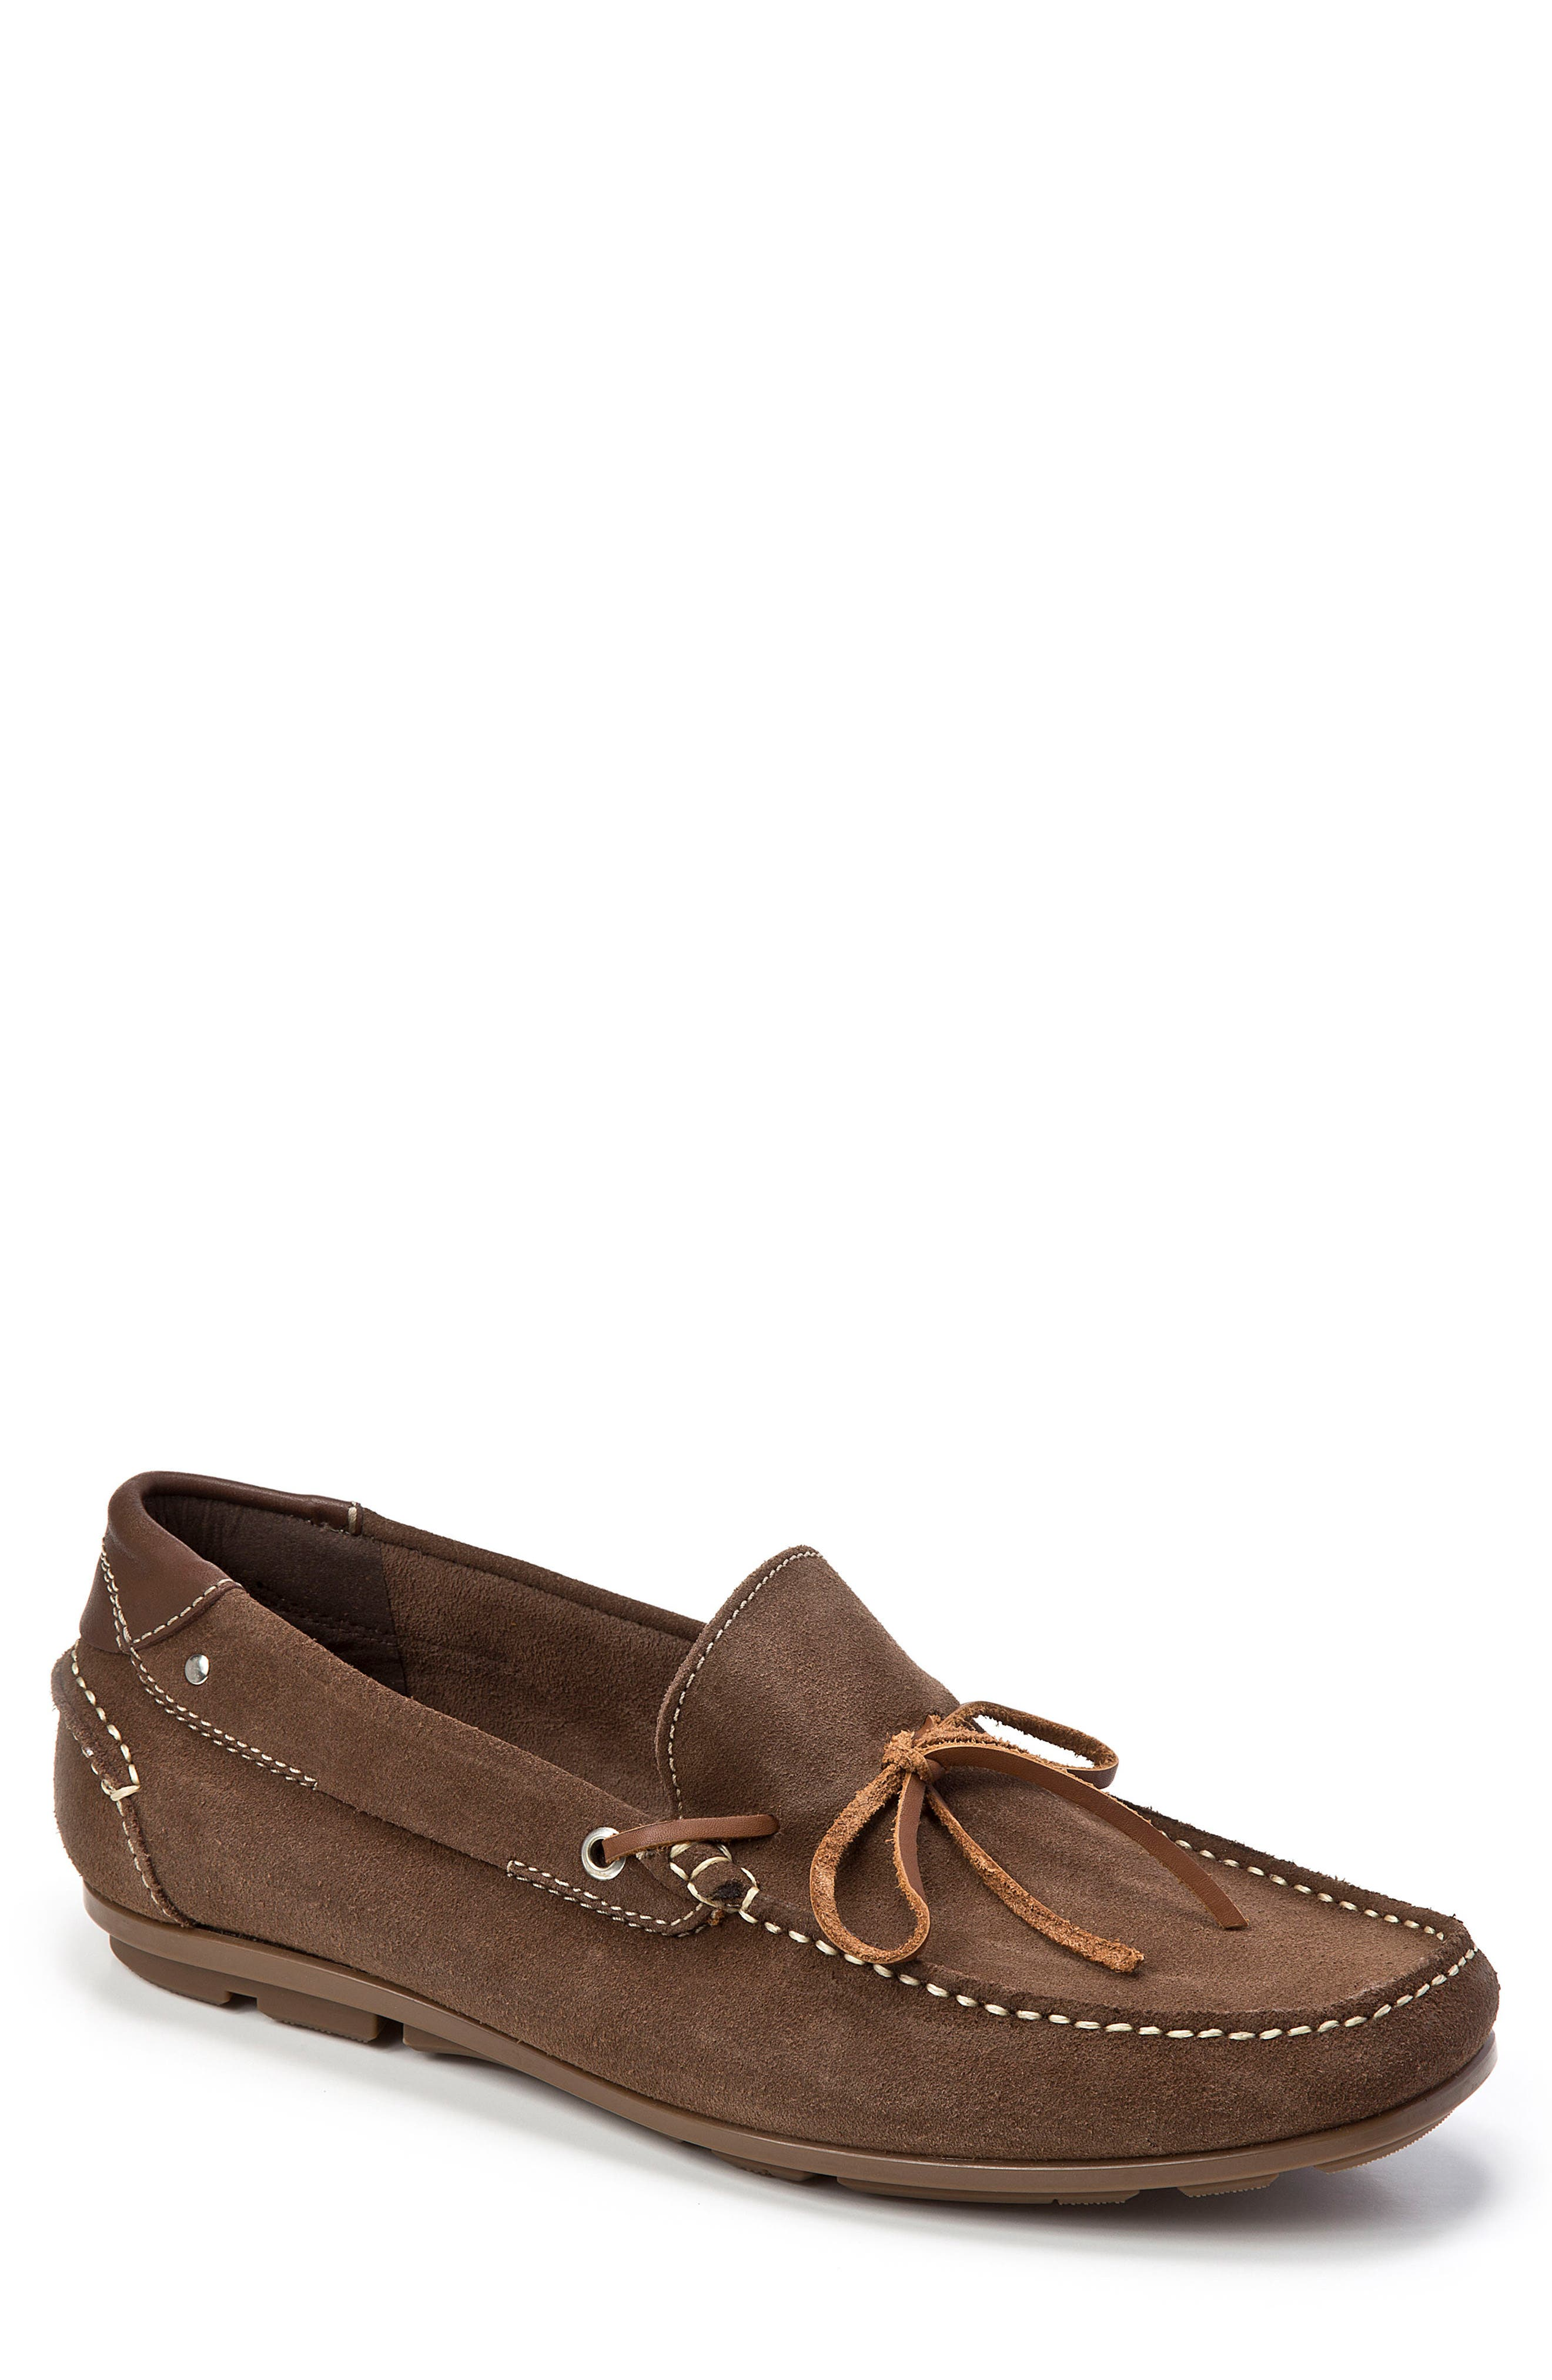 Andres Driving Moccasin,                             Main thumbnail 1, color,                             BROWN